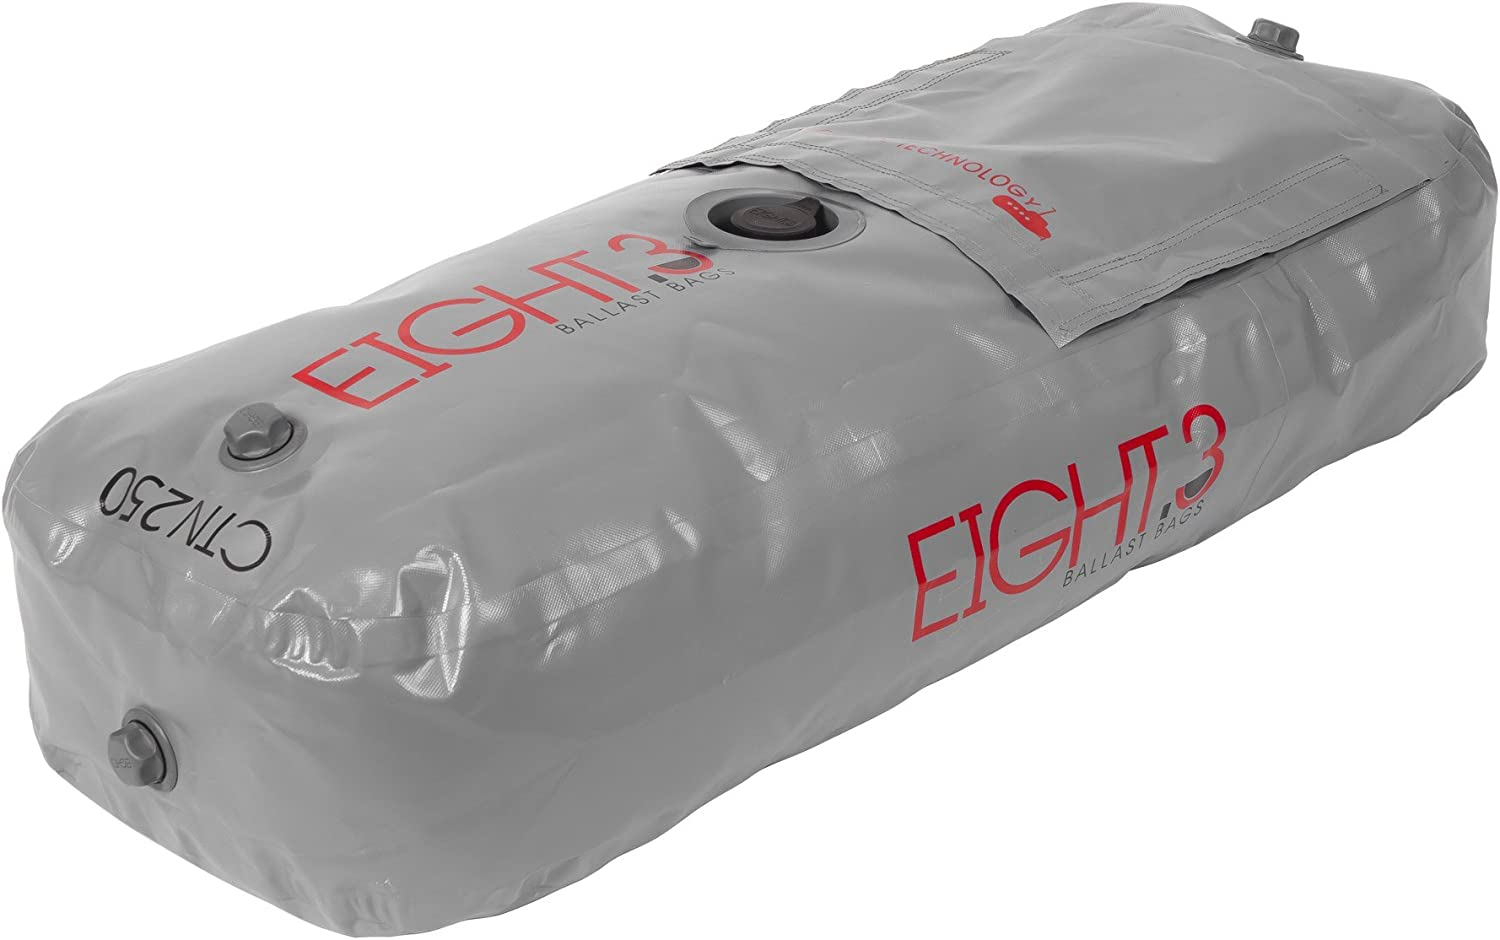 Ronix Eight.3 Telescope Locker Seat Ballast Tube Sac, 360 Lbs.